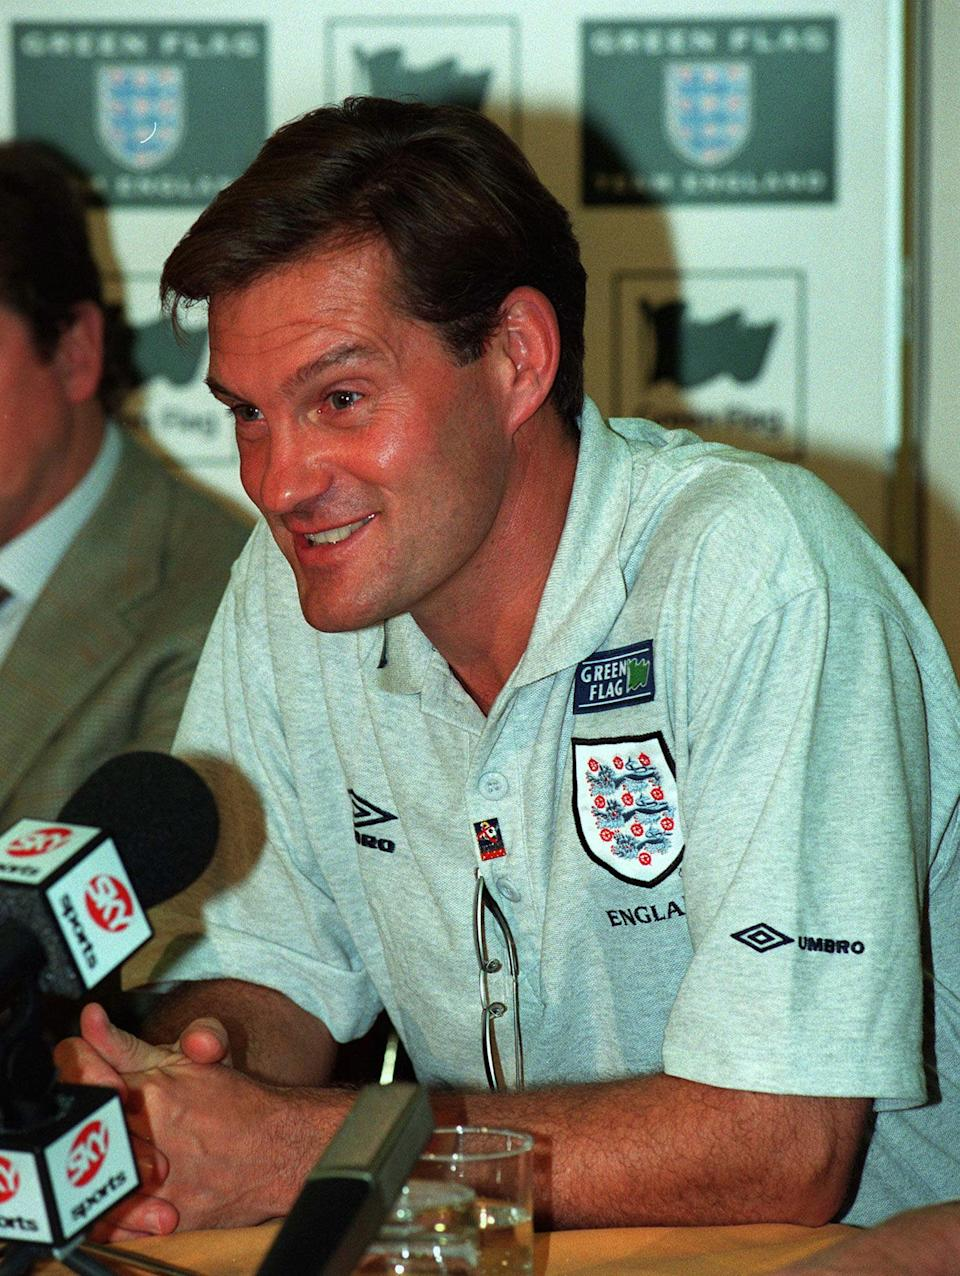 England's national soccer team coach Glenn Hoddle answers journalists' questions at a press conference in Rome's Capital Hotel, Friday October 10, 1997. England will play against Italy Saturday night October 11 in Rome's Stadio Olimpico, for World cup qualifying match. (AP Photo/Angelo Scipioni)